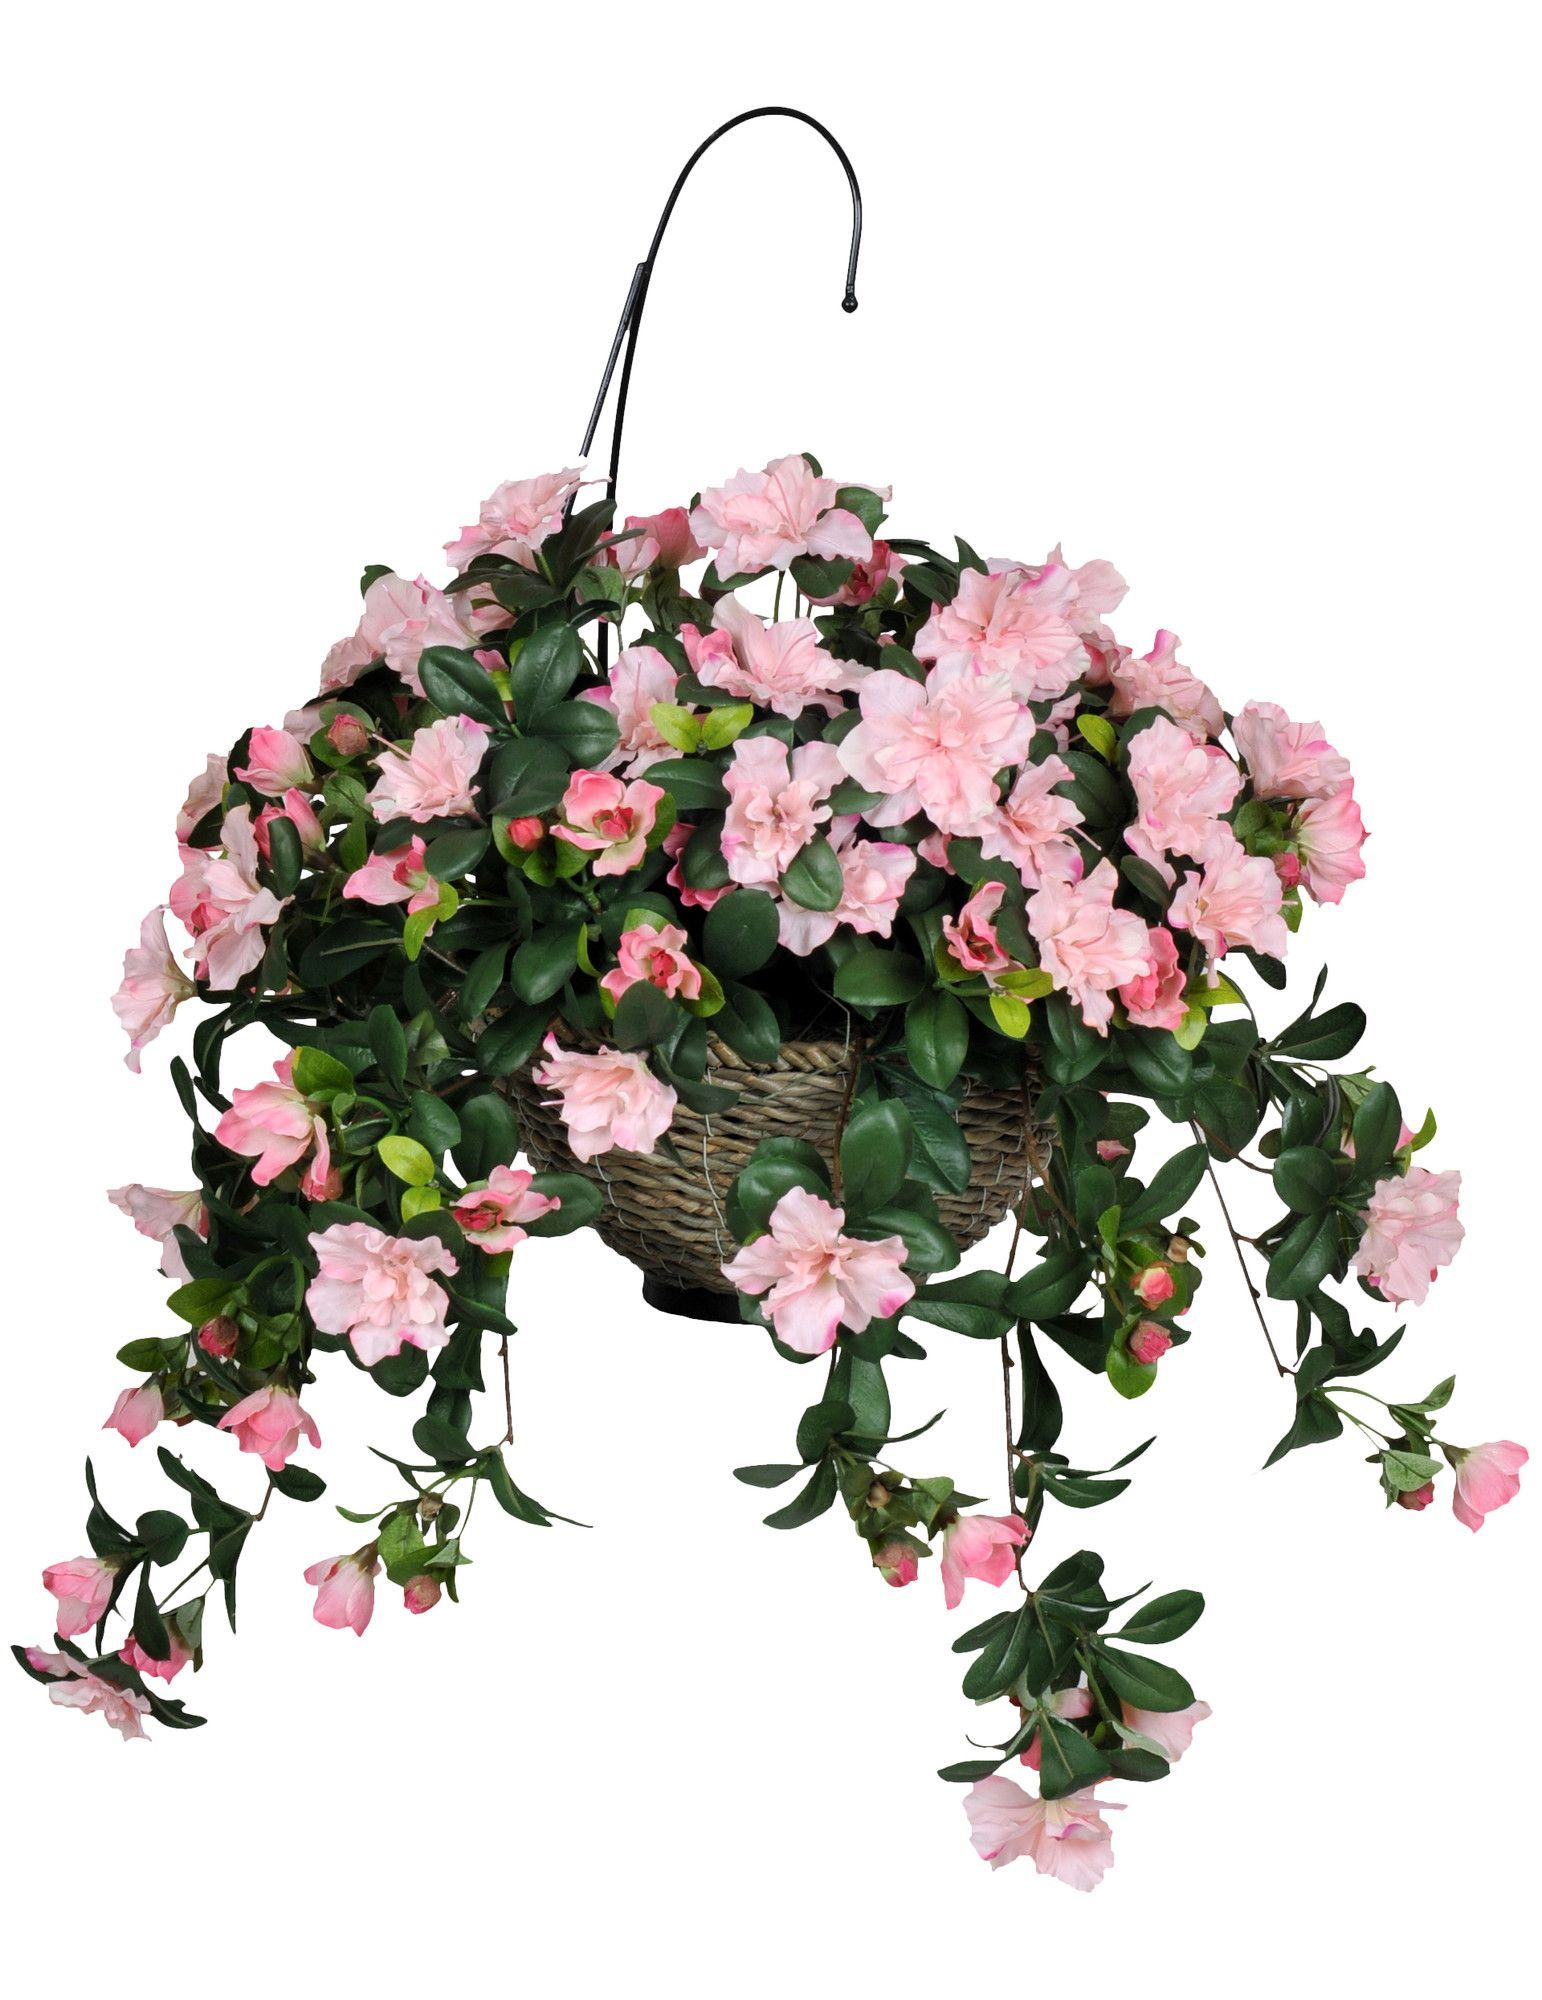 Artificial Azalea Hanging Plant in Basket (With images